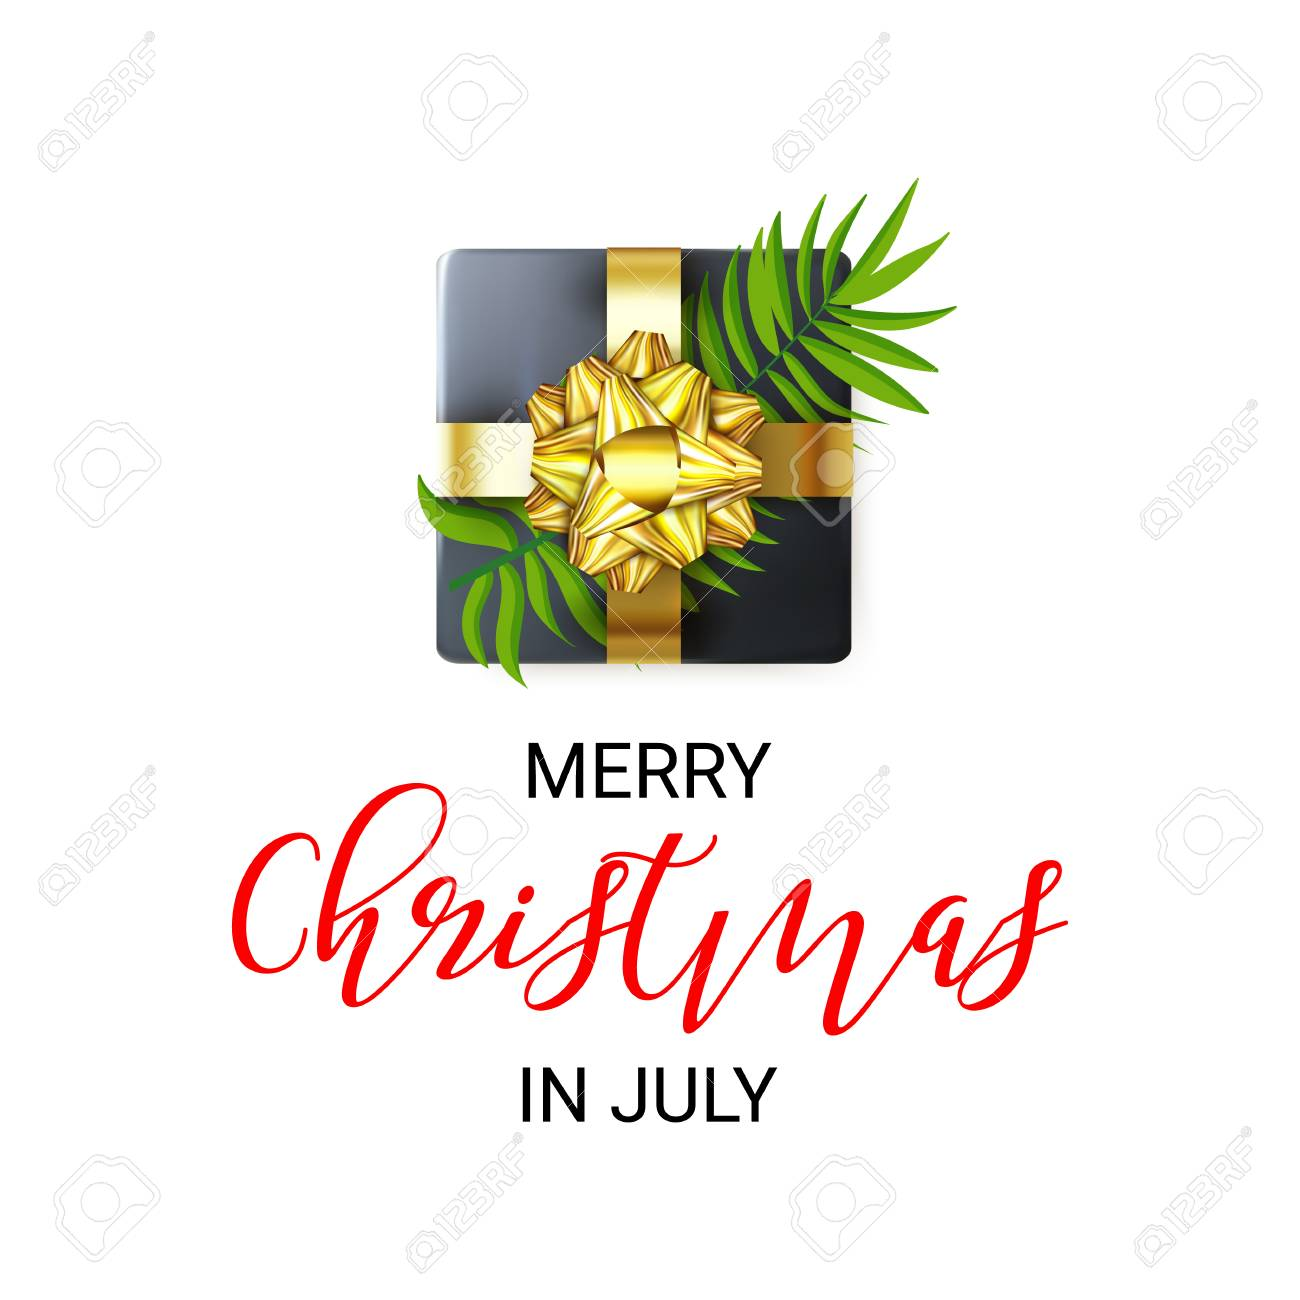 Christmas In July Images Free.Merry Christmas In July Greeting Banner Decorated With Realistic